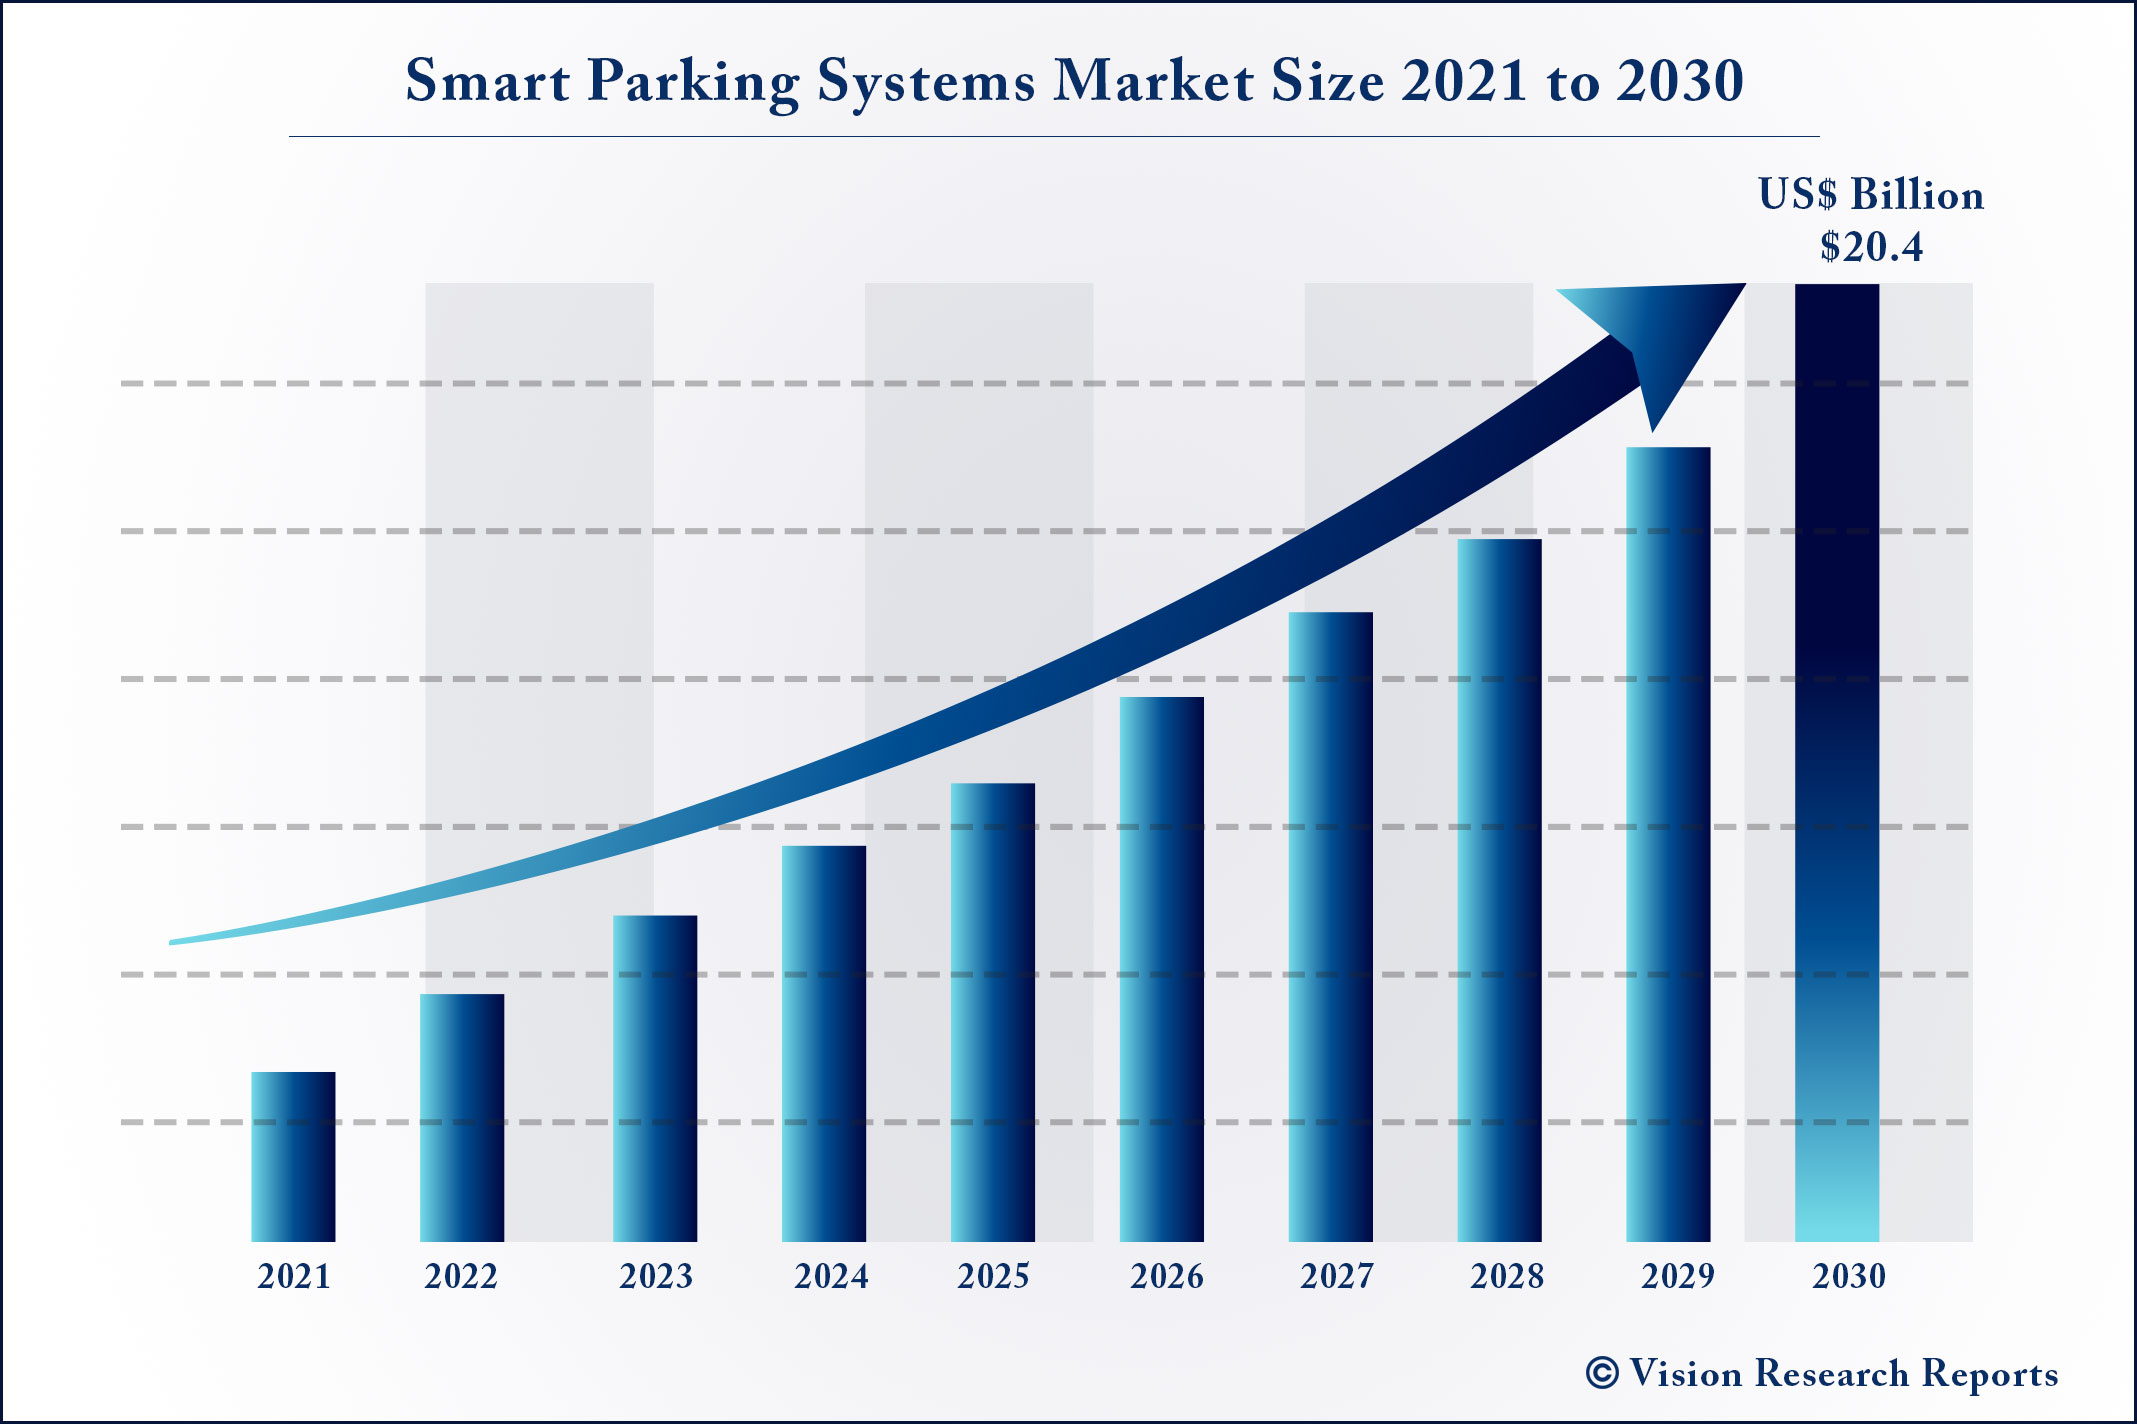 Smart Parking Systems Market Size 2021 to 2030